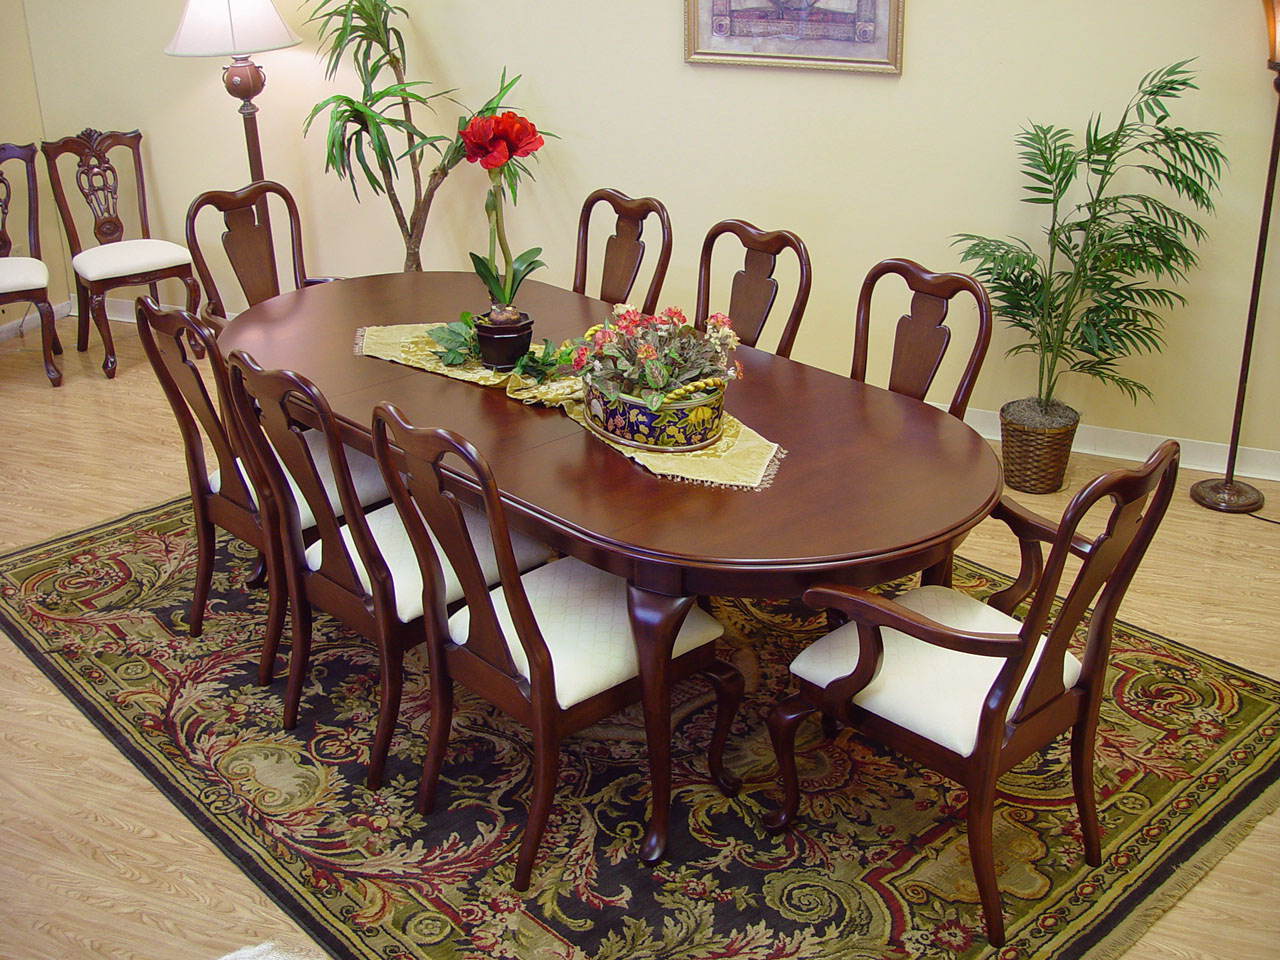 9 Piece Classic Queen Anne Mahogany Dining Table and Chair  : fullview1exp from www.ebay.com size 1280 x 960 jpeg 397kB